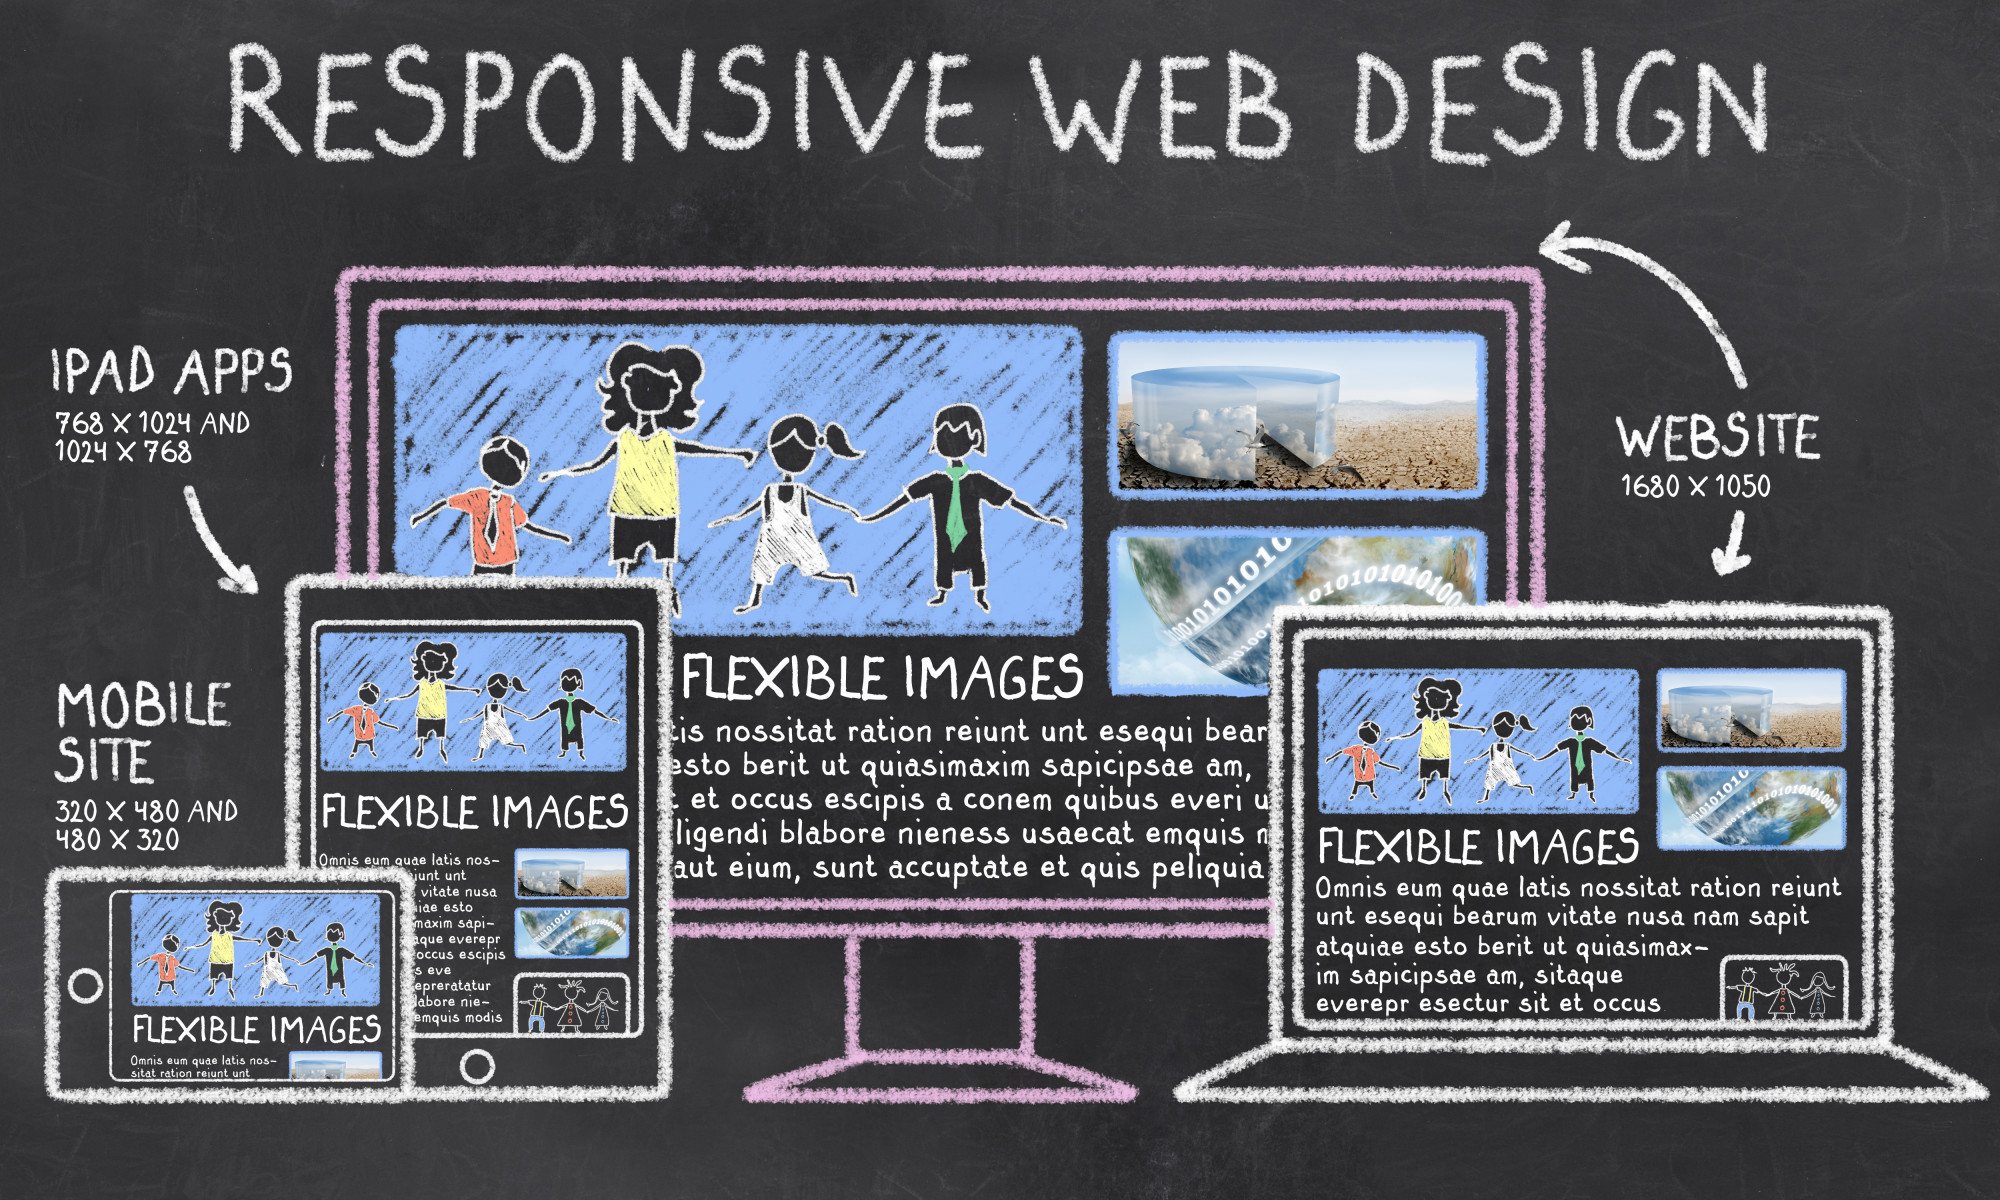 responsive web design text and images